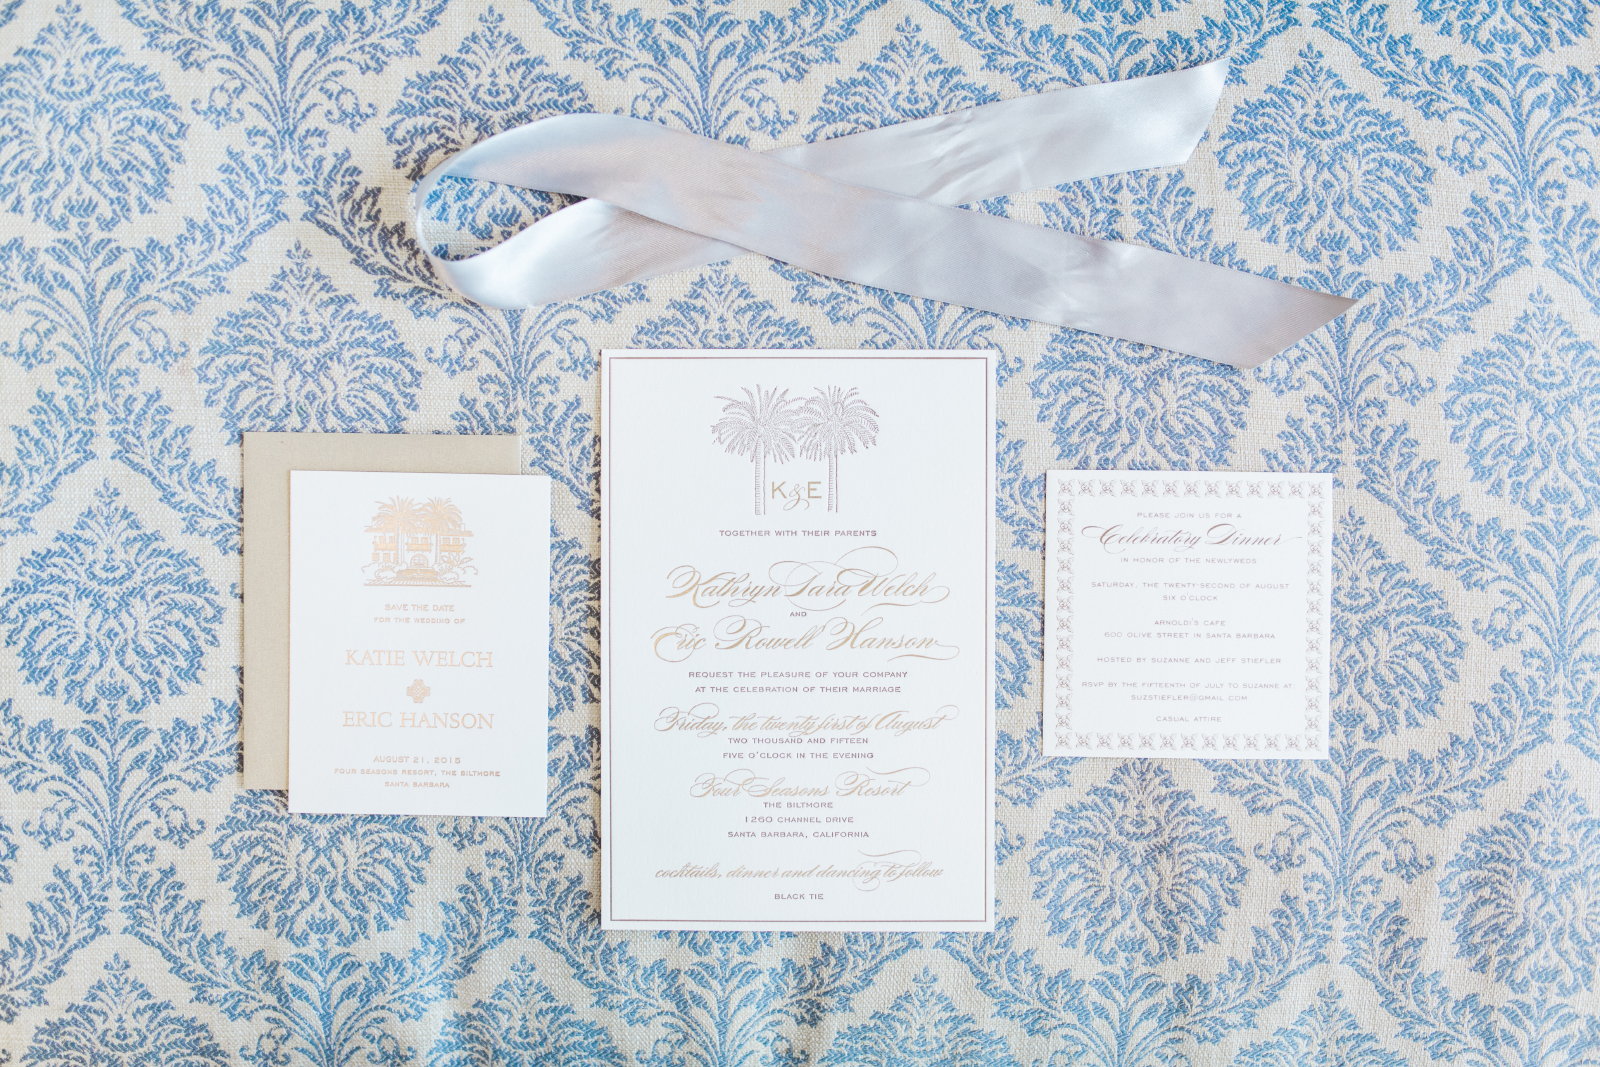 Letter Press wedding invitations and stationery suite for